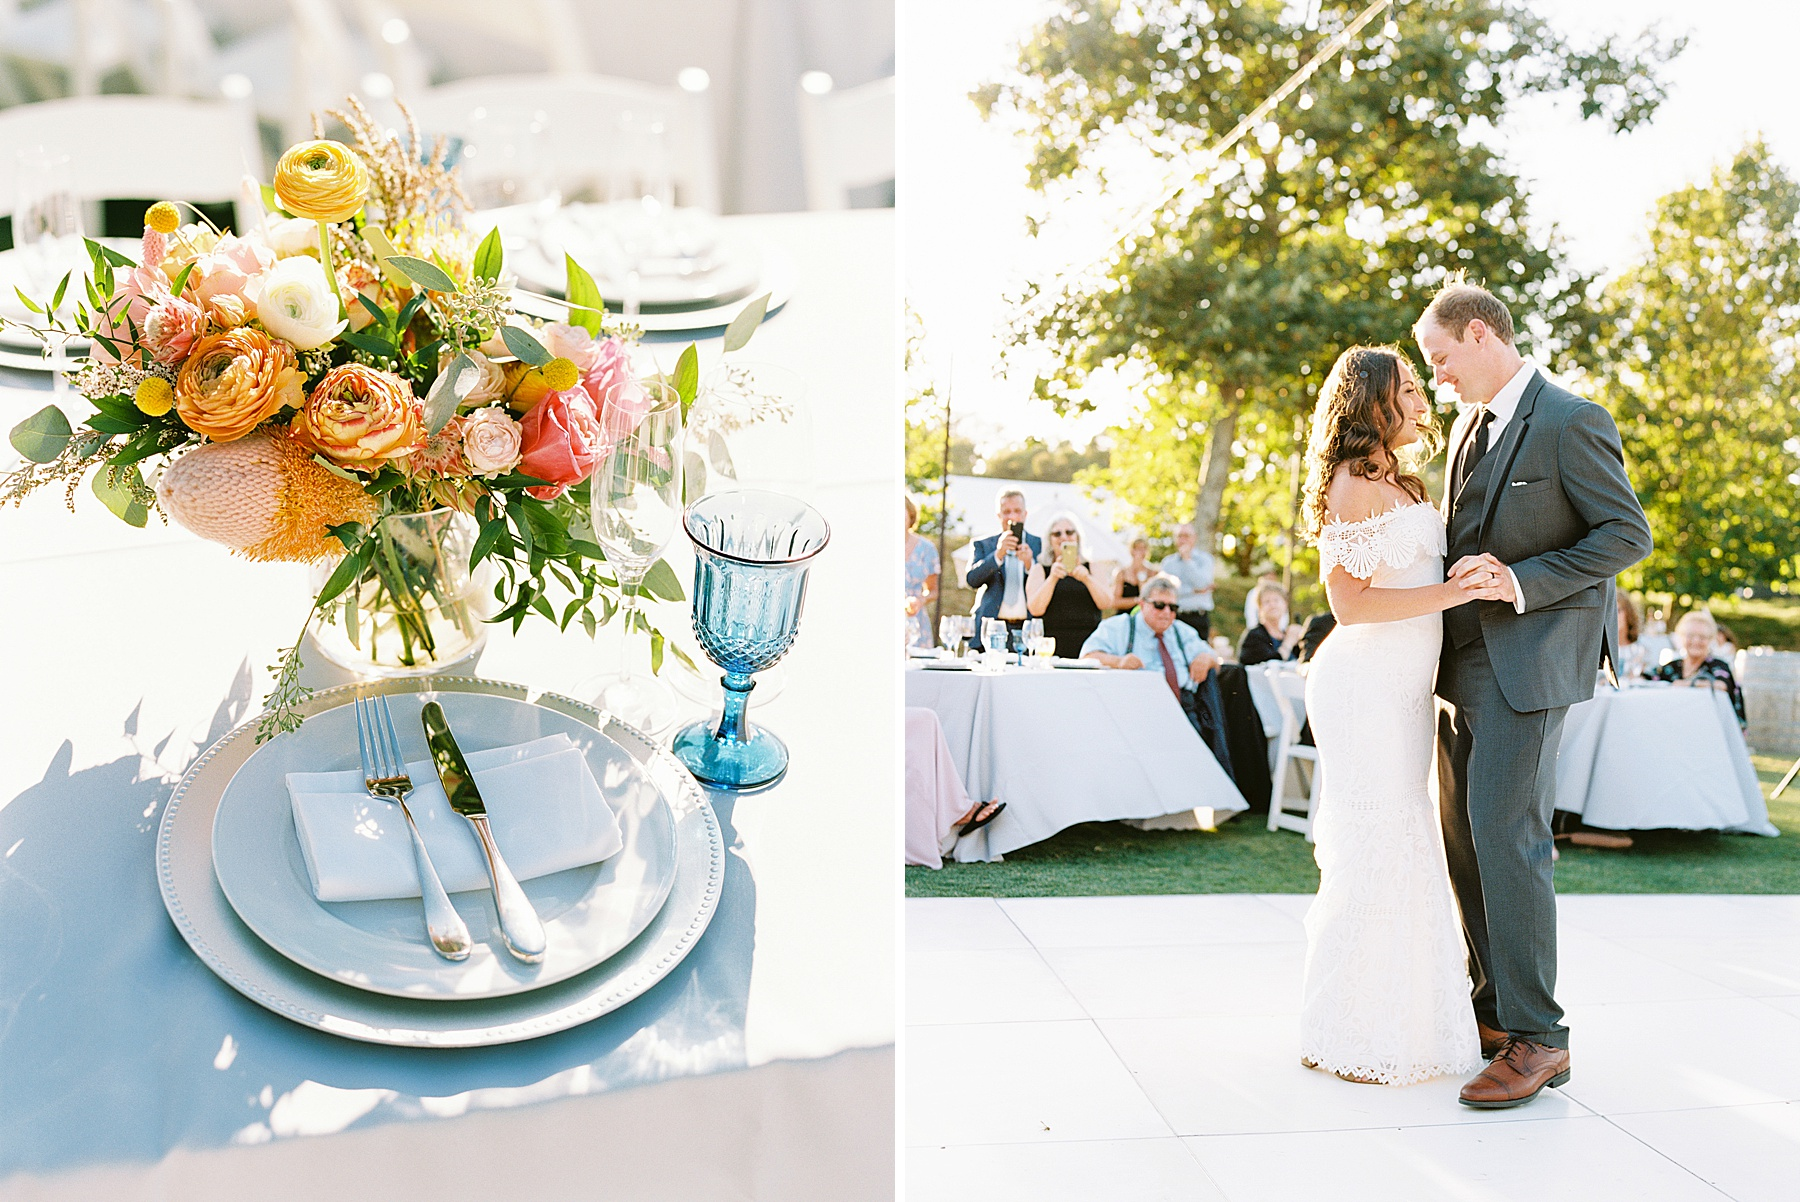 Wente Wedding with A Tropical Color Palette - Ashley & Mike - Featured on Inspired by This - Ashley Baumgartner_0005.jpg